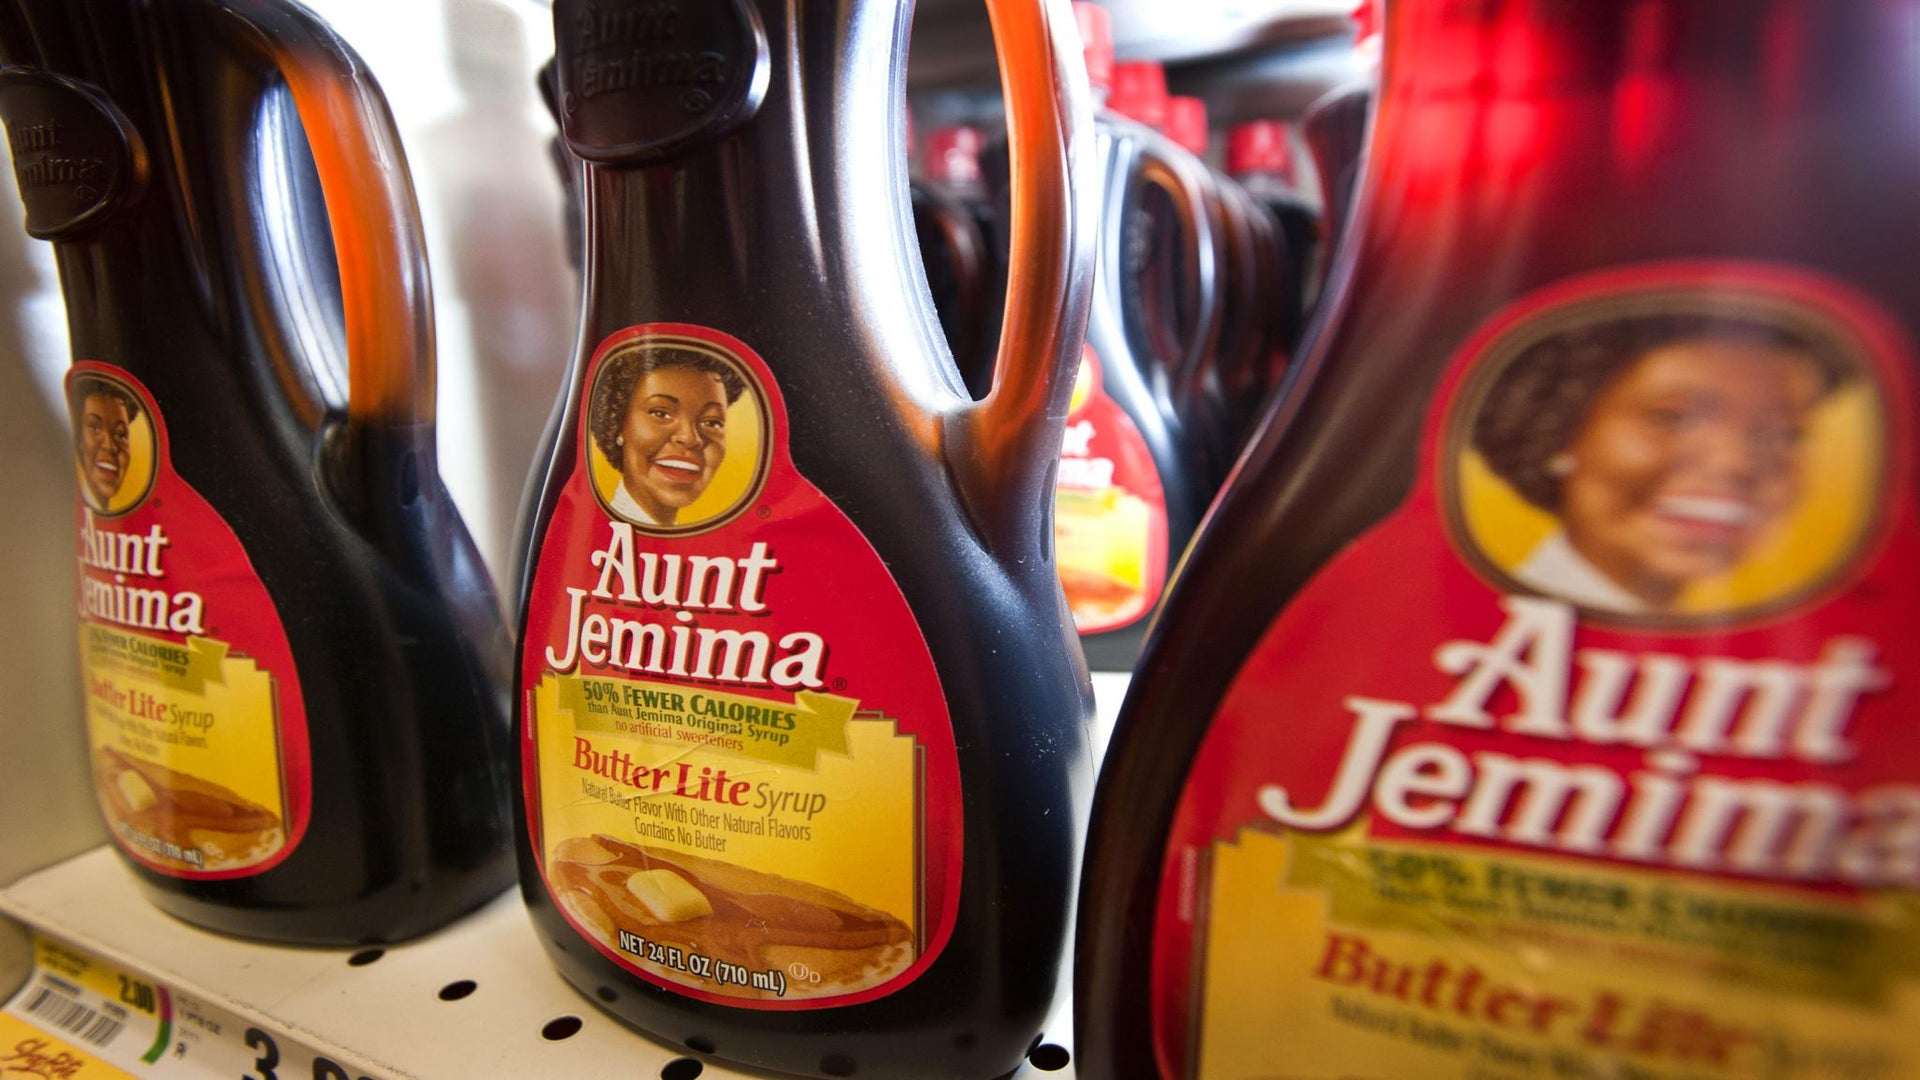 'Aunt Jemima's' Family Sue Quaker Oats for $2 Billion in Royalties